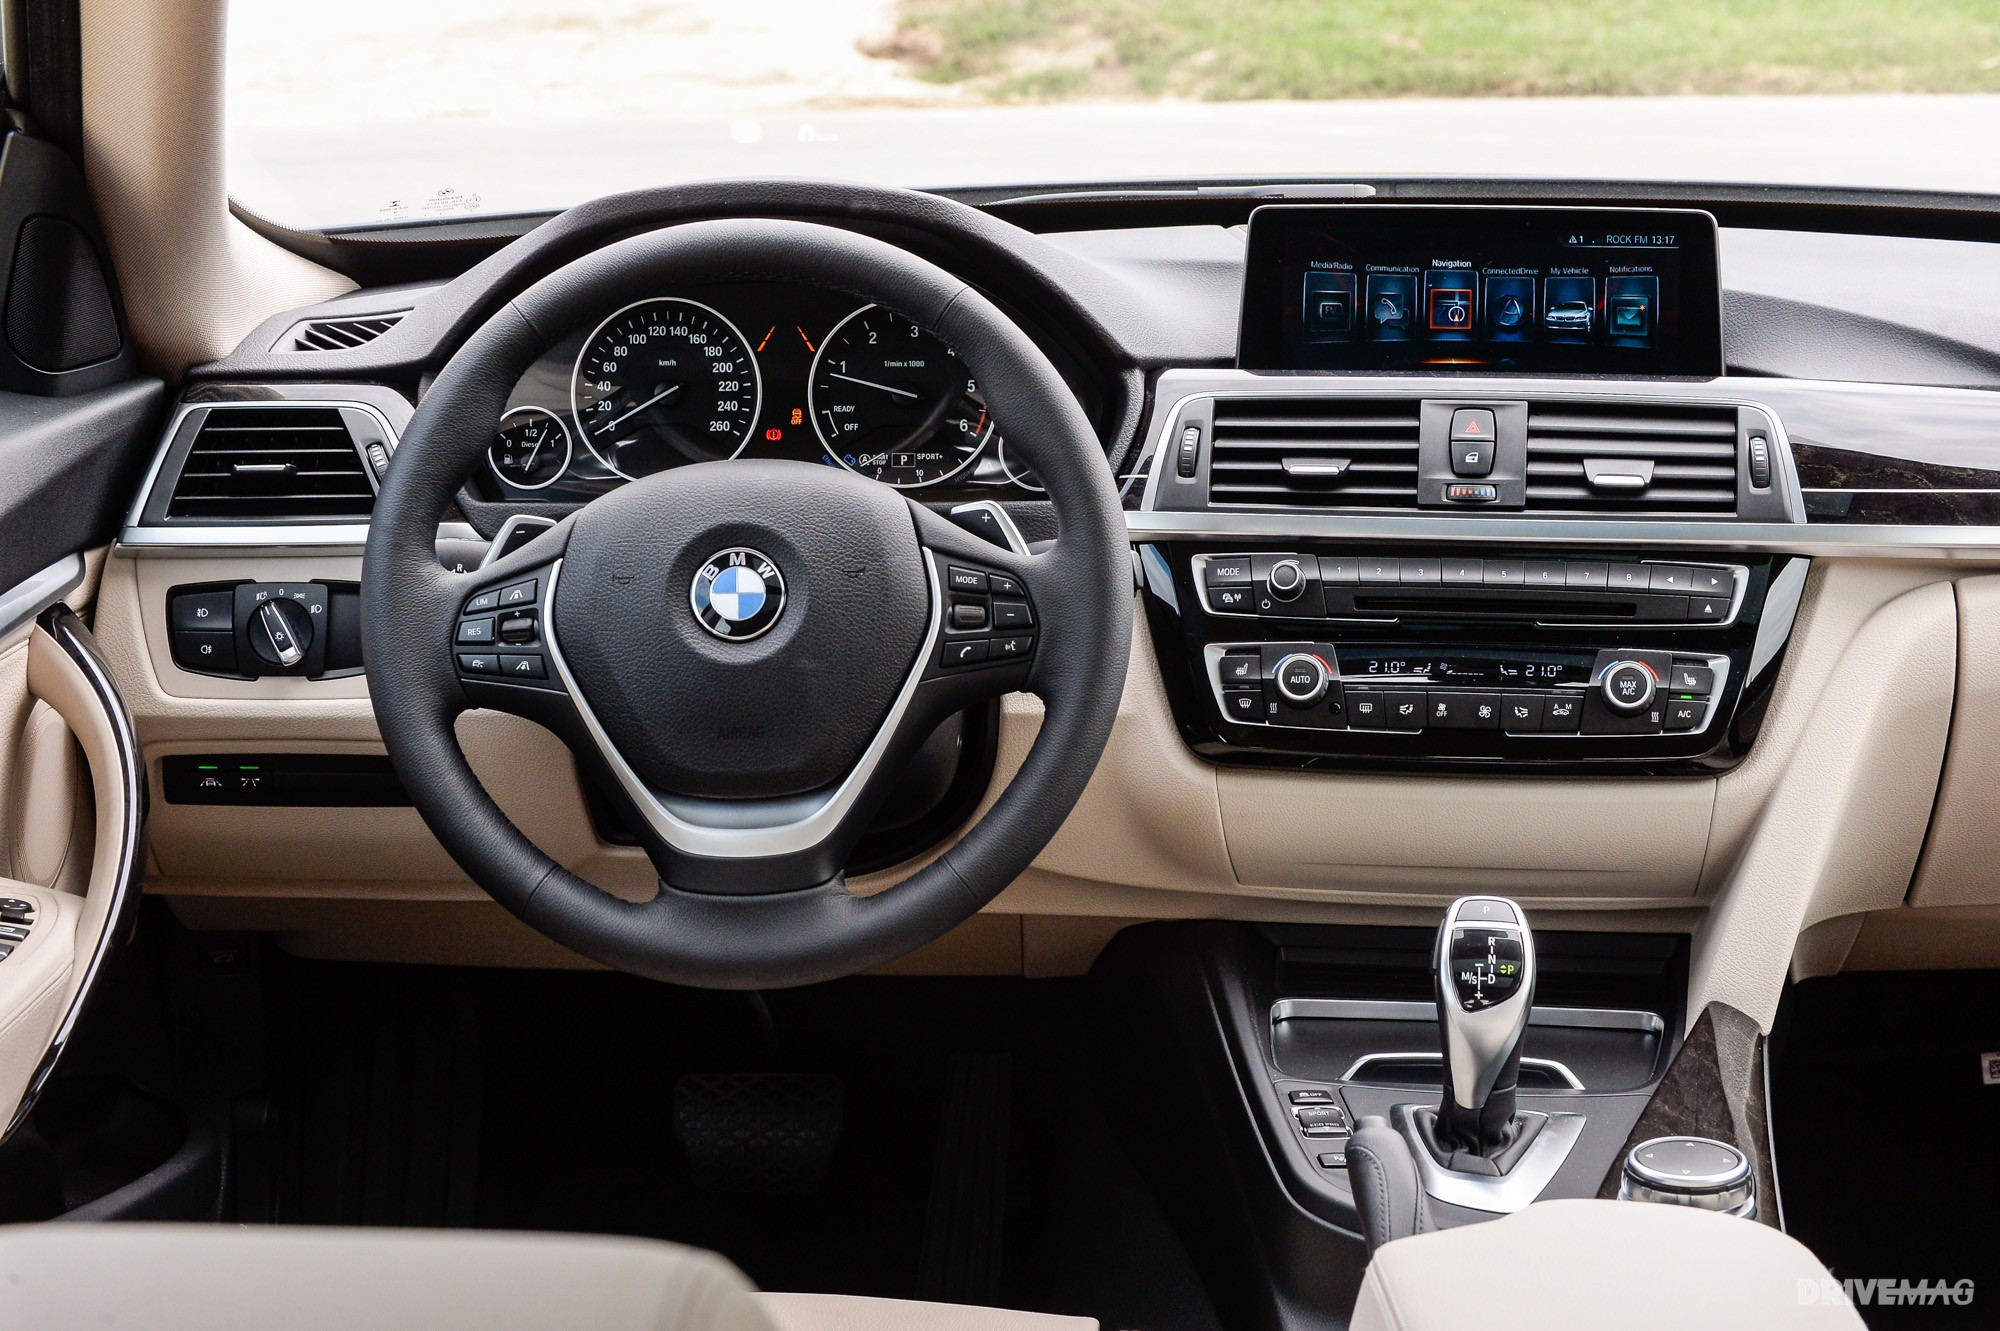 2017 Bmw 320d Gt Luxury Line Test Drive Think Outside The Box